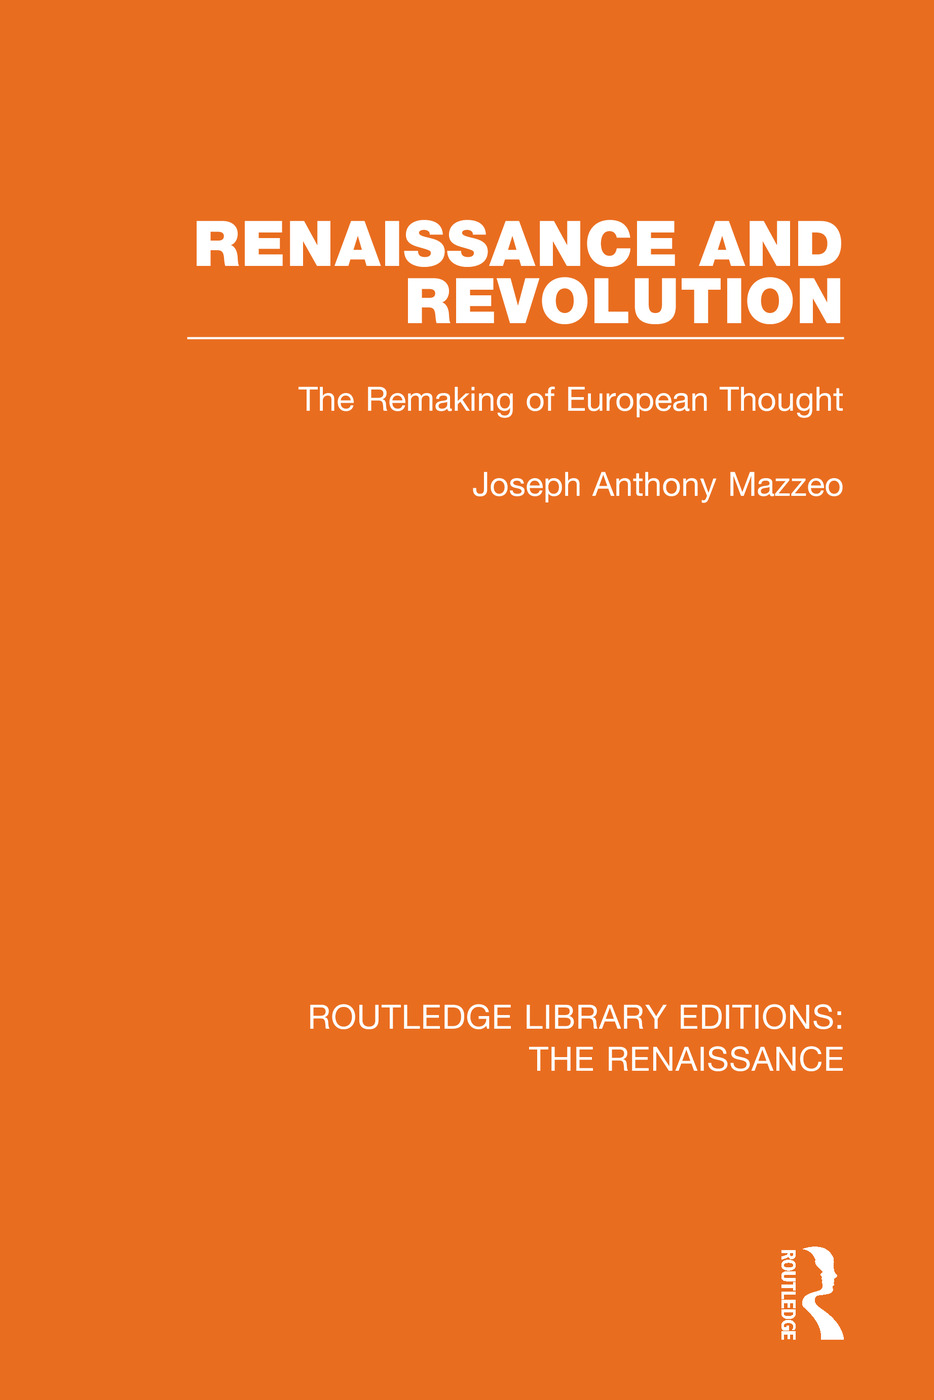 Renaissance and Revolution: The Remaking of European Thought book cover